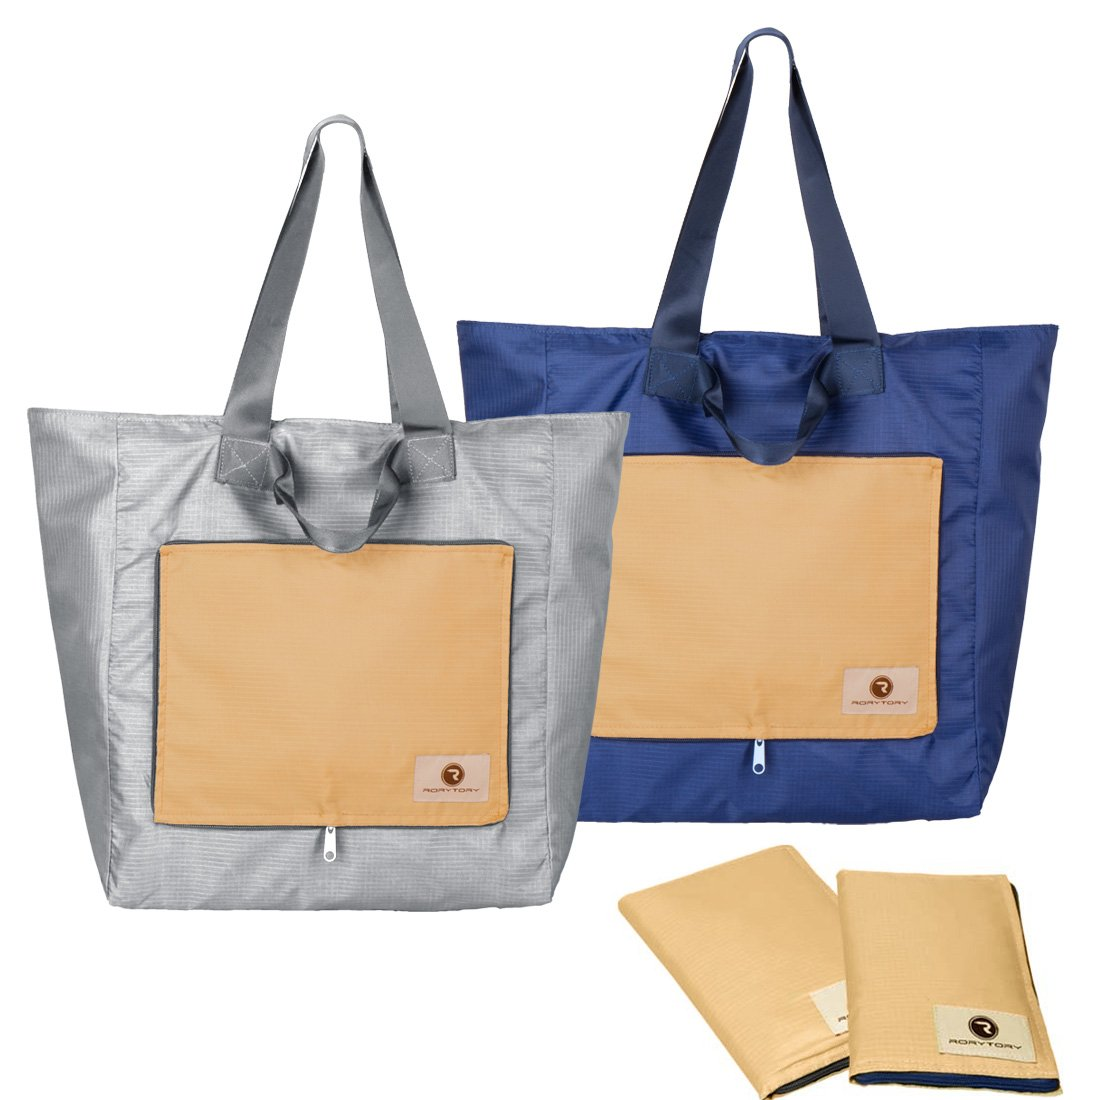 6baba00c1a84 Amazon.com  RoryTory 2 pack Foldable Compact Nylon Shopping Travel Tote Bag  - Blue Gray  Shoes